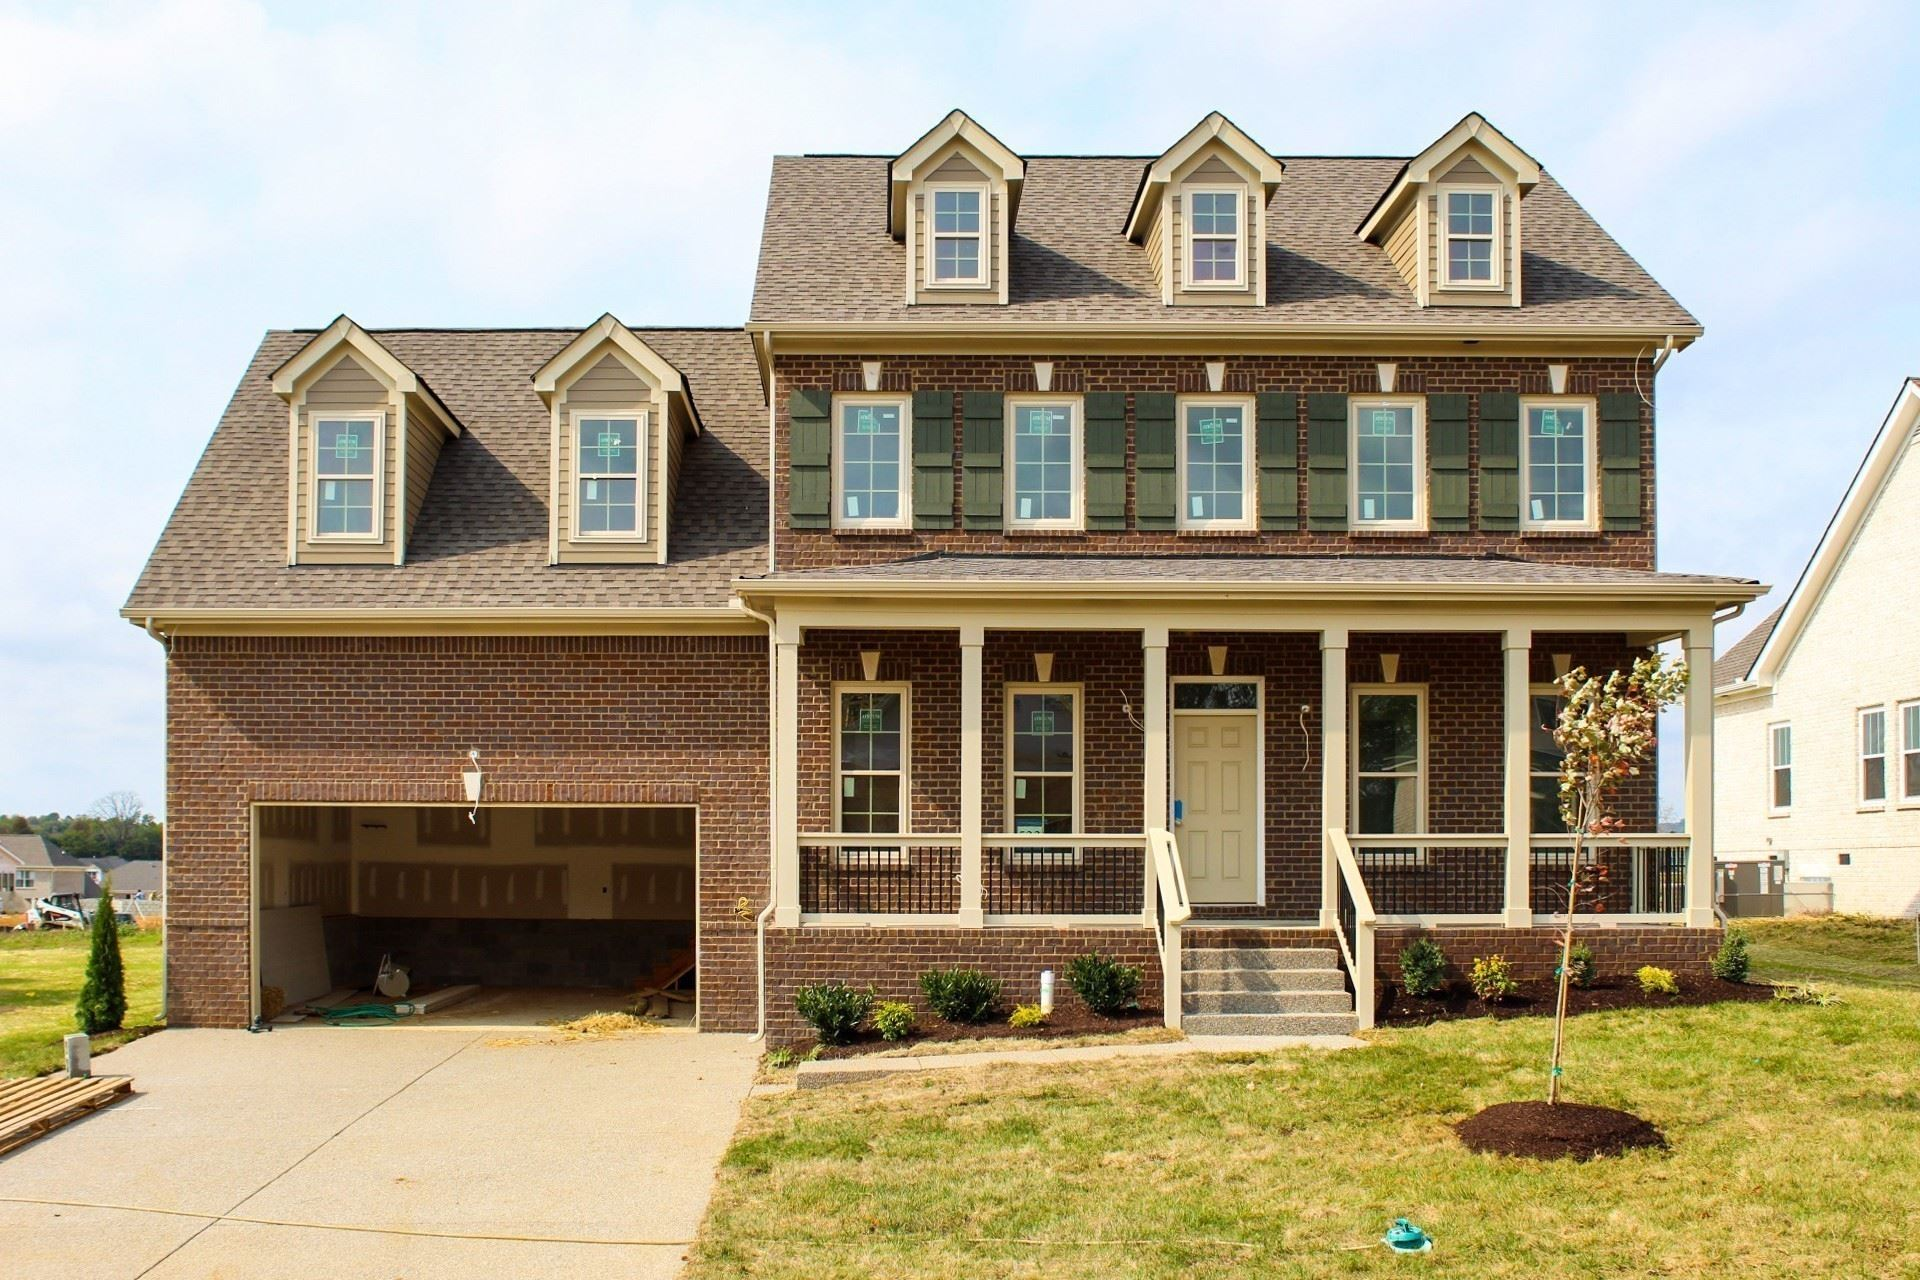 9034 Safe Haven Place Lot 533, Spring Hill, TN 37174 - MLS#: 2210029